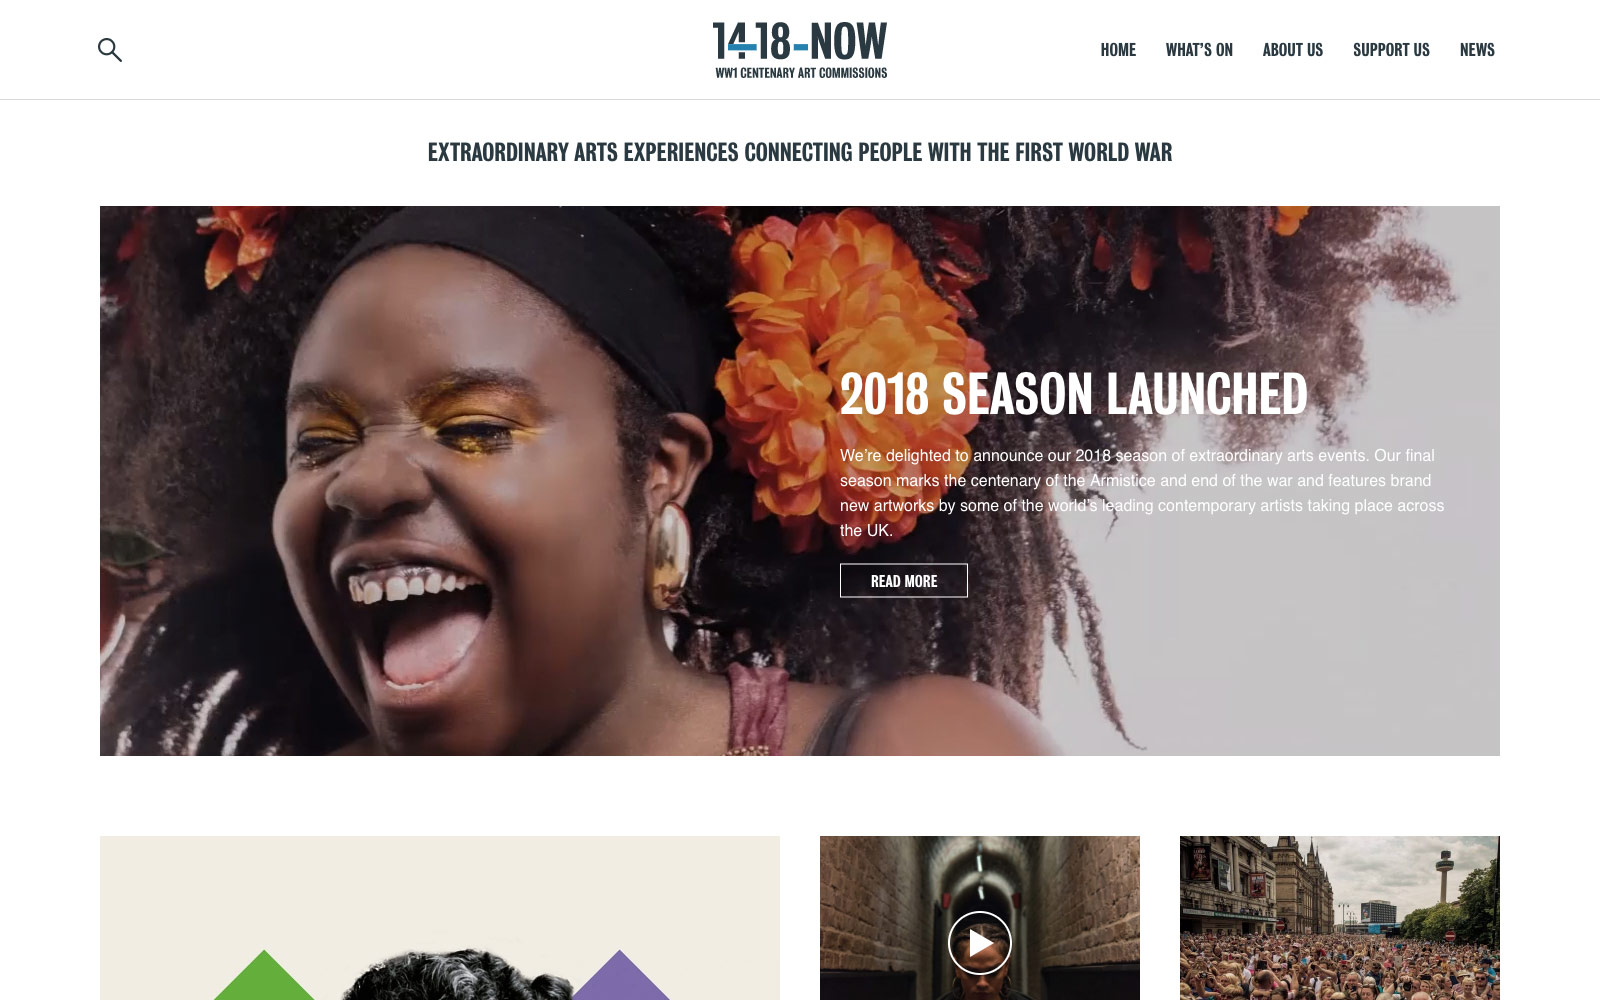 14-18 NOW website homepage